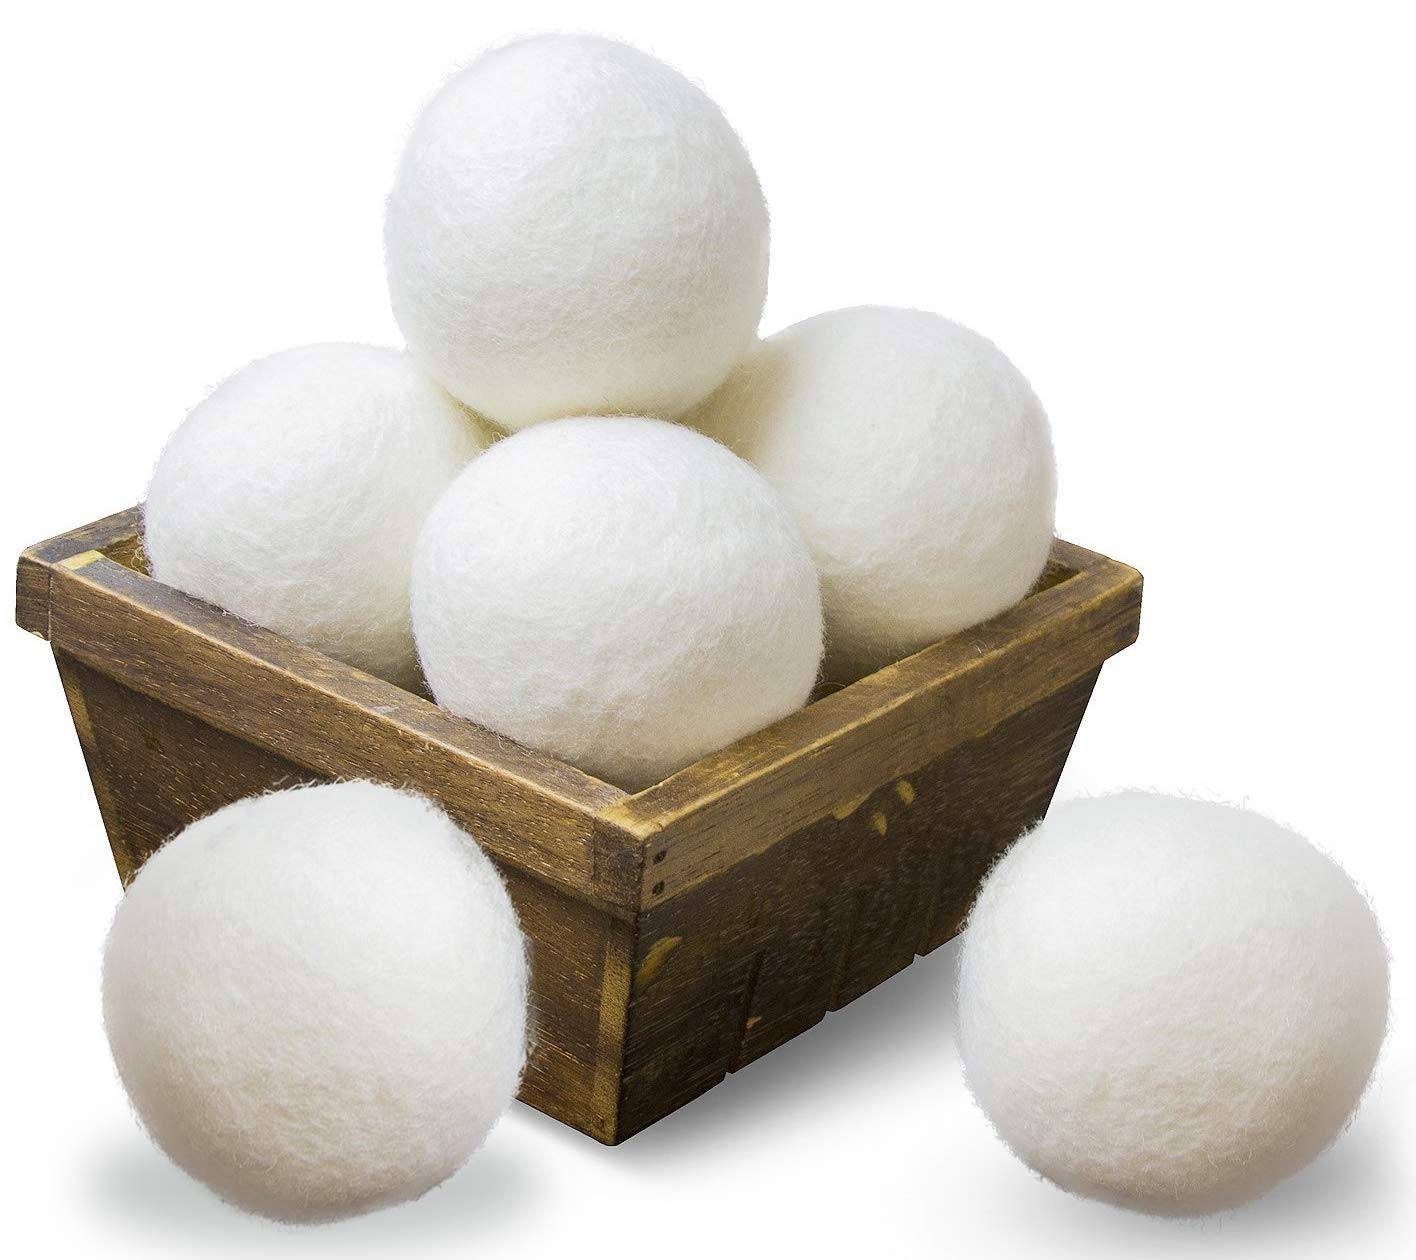 6b745b548a68 SnugPad Wool Dryer Balls Natural Fabric Softener XL Size 6 Pack White 6  Count